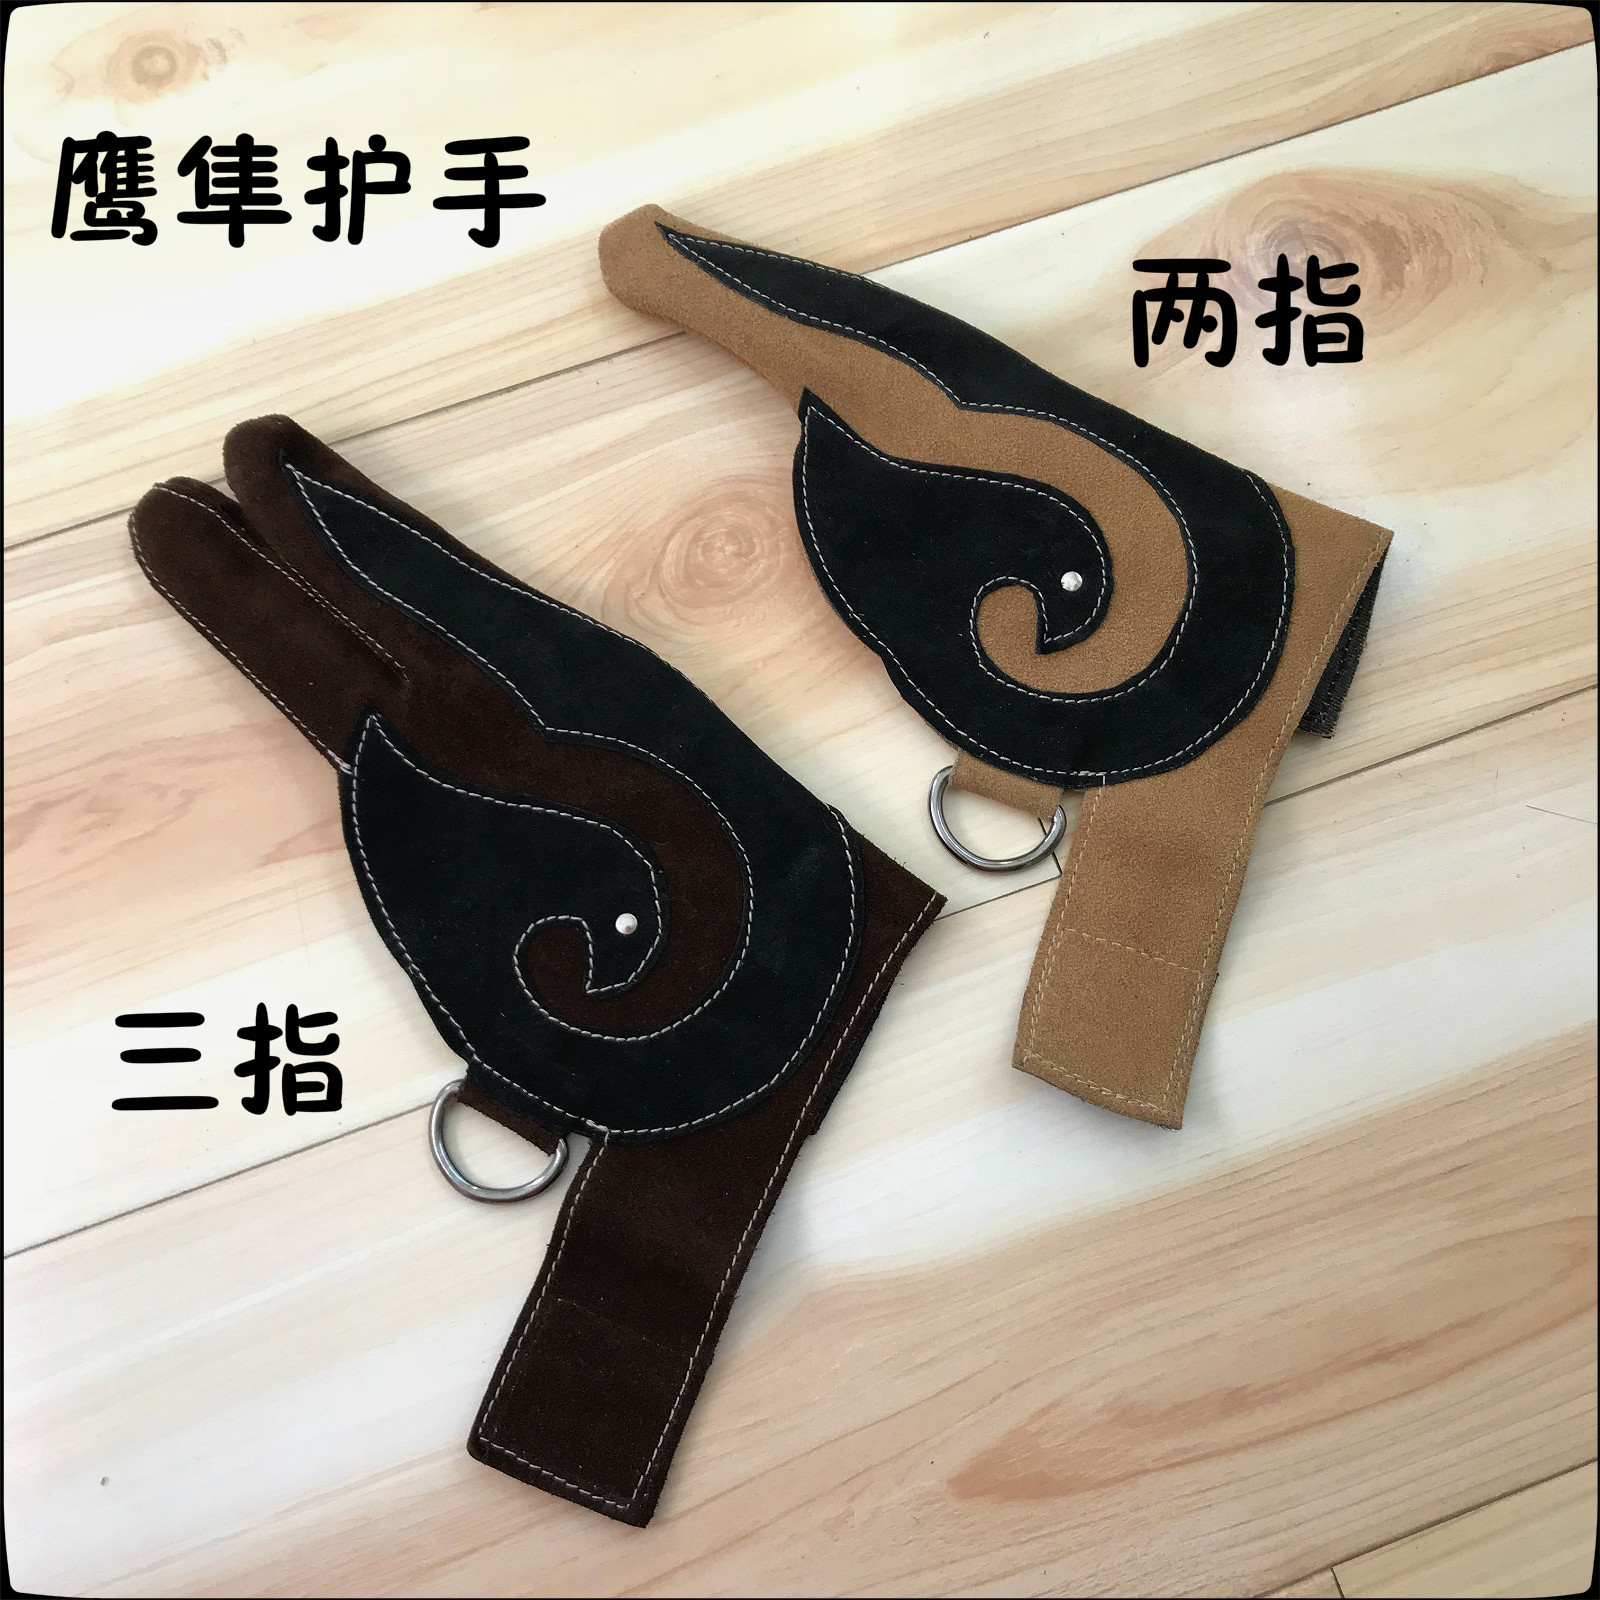 Falconry Accessories Cowhide Glove For Small Falcon Handmade Eagle Gloves Two Fingers Leather Gloves For Accipiter Nisus